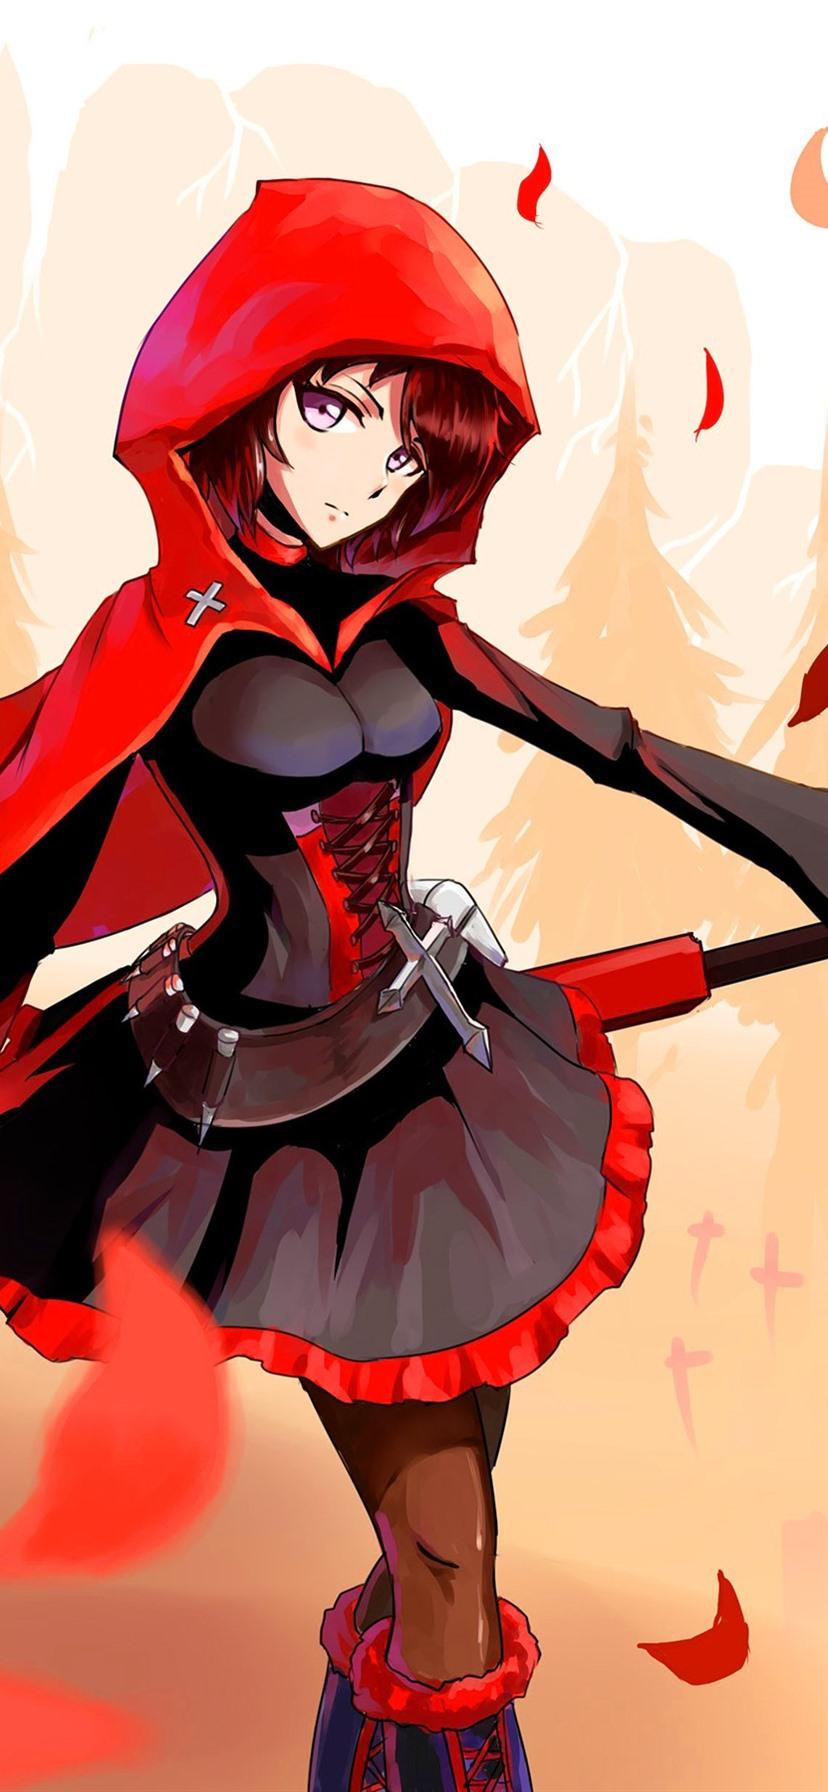 Little Red Riding Hood Anime Girl 828x1792 Iphone 11 Xr Wallpaper Background Picture Image